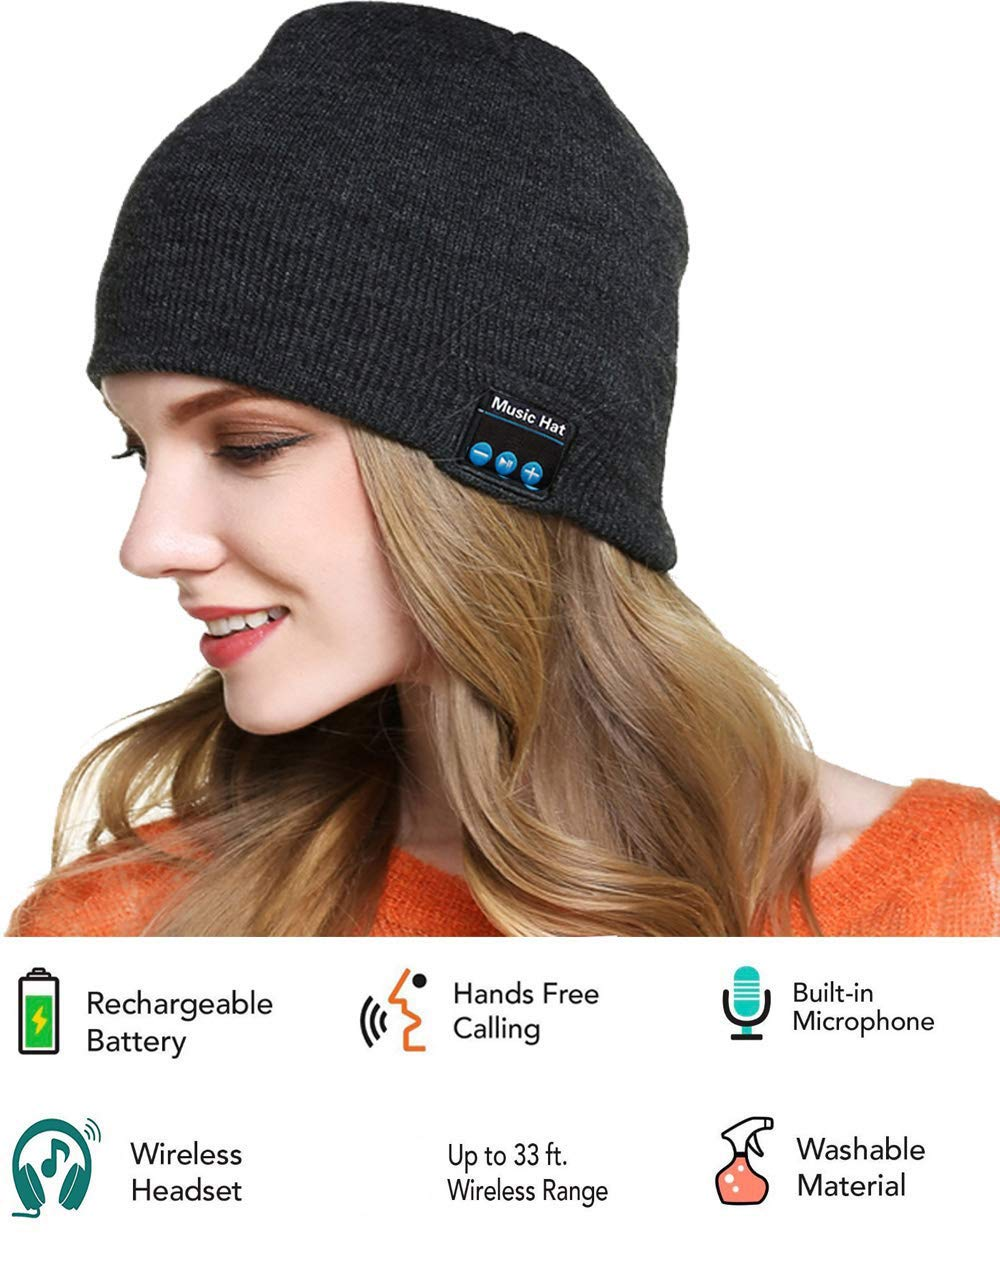 bc72cf28993 Amazon.com  Bluetooth Beanie Hat Headphones Upgraded V4.2 Wireless Smart  Beanies Headset Winter Music Hat Knit Cap with Built-in Stereo Speaker  Unique ...